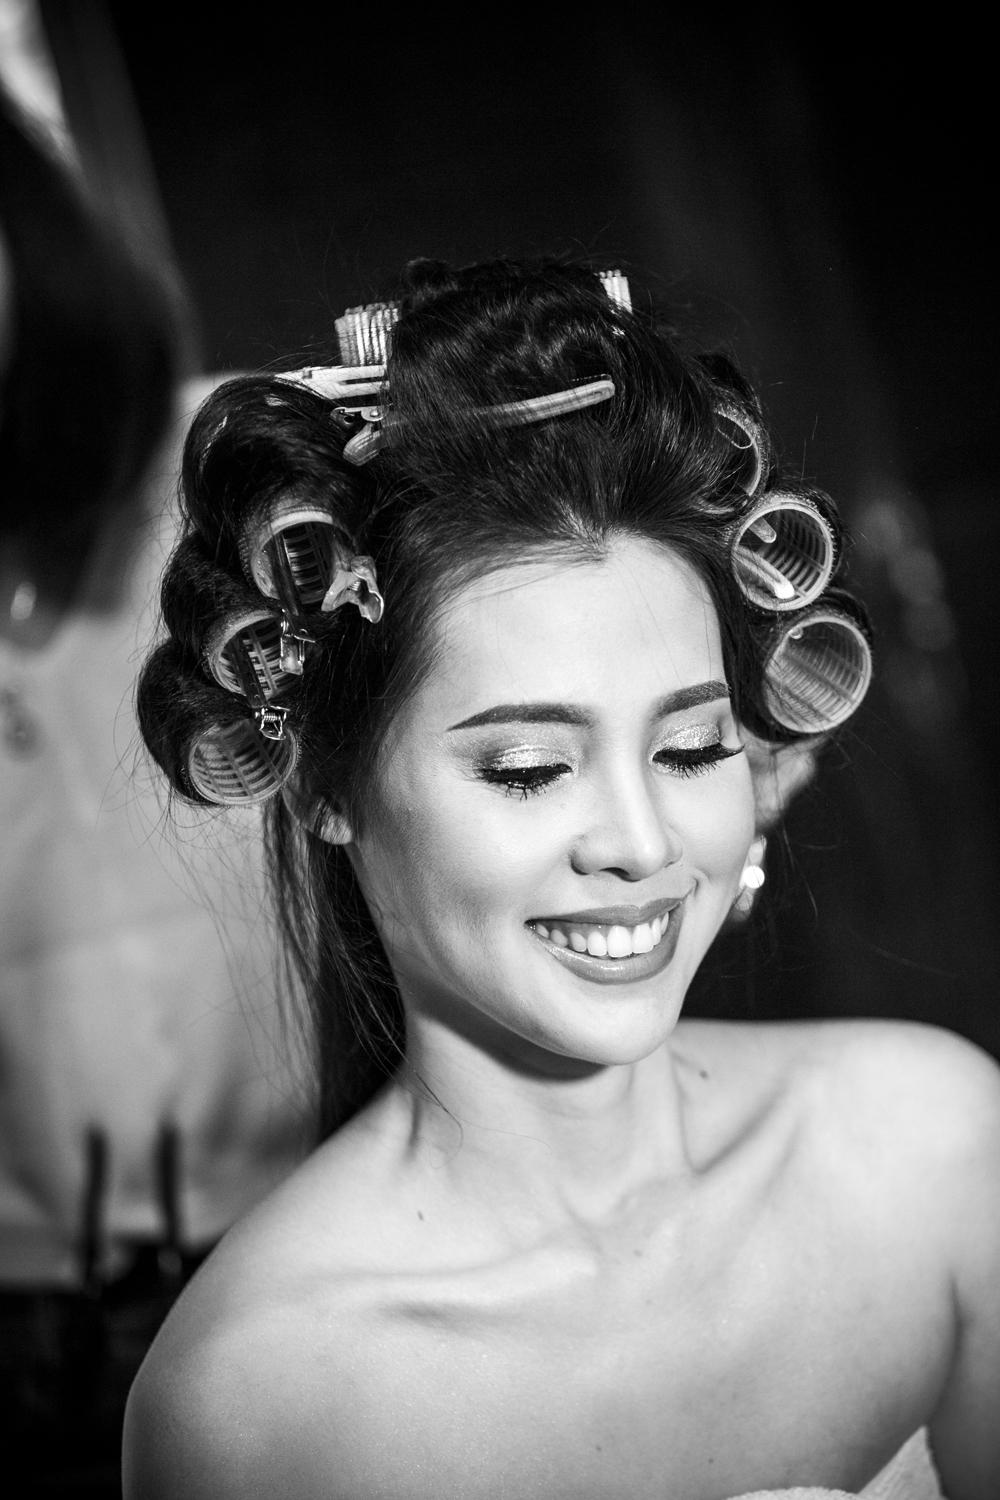 Ying-Paul-Wedding-33.jpg